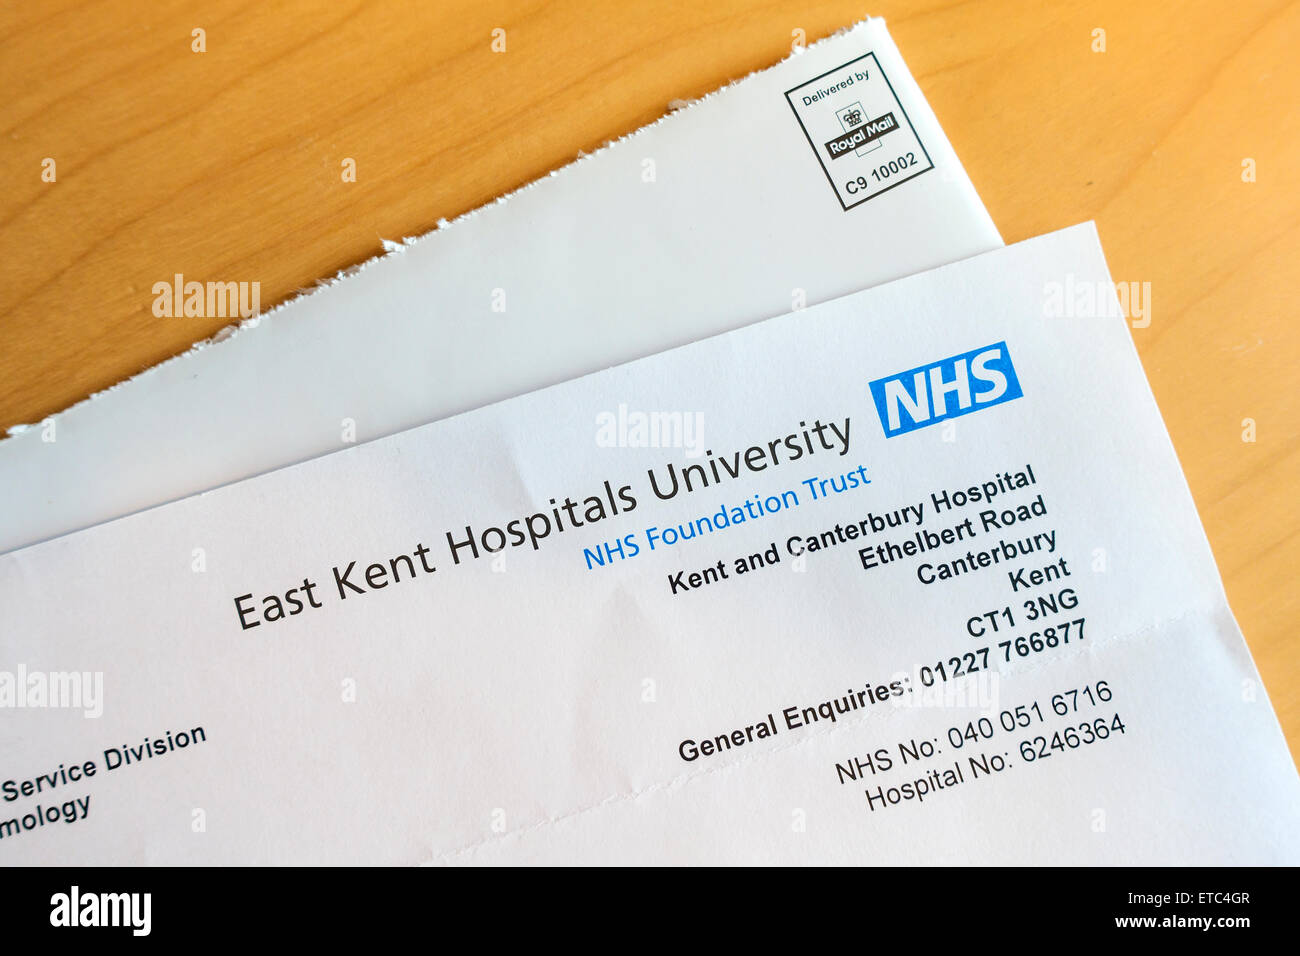 NHS Letter from Hospital East Kent Hospitals University Kent and Canterbury Hospital - Stock Image